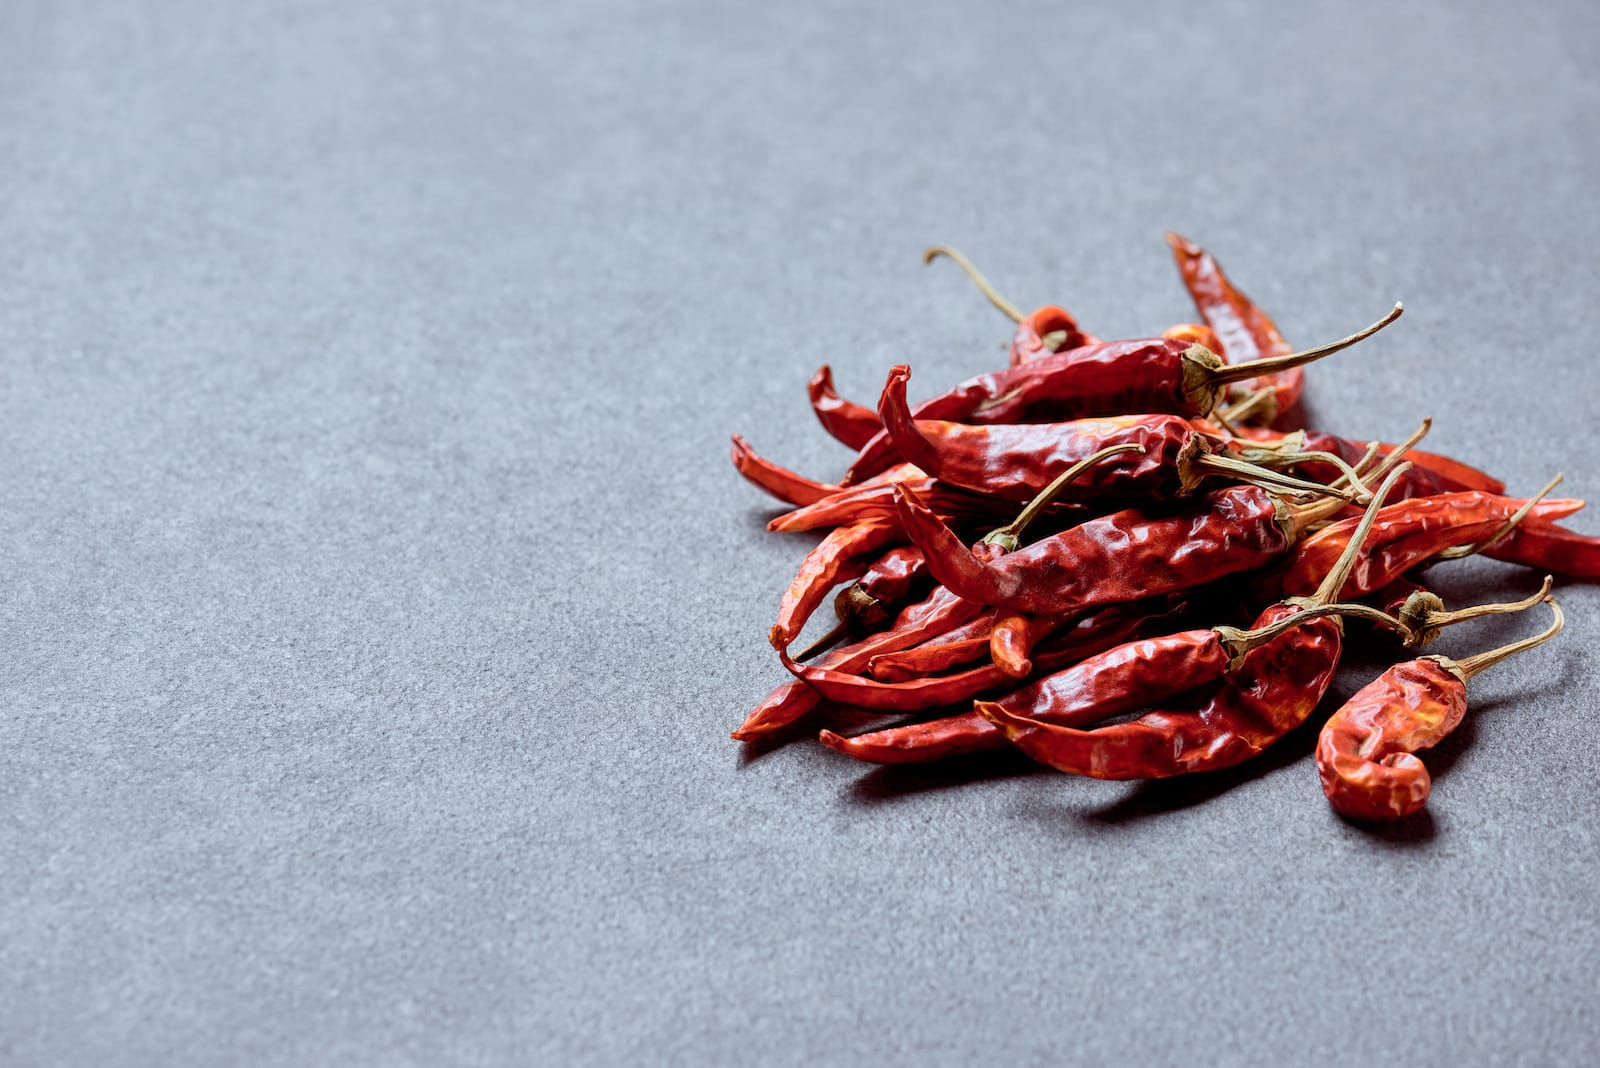 Top Methods For Drying Chili Peppers